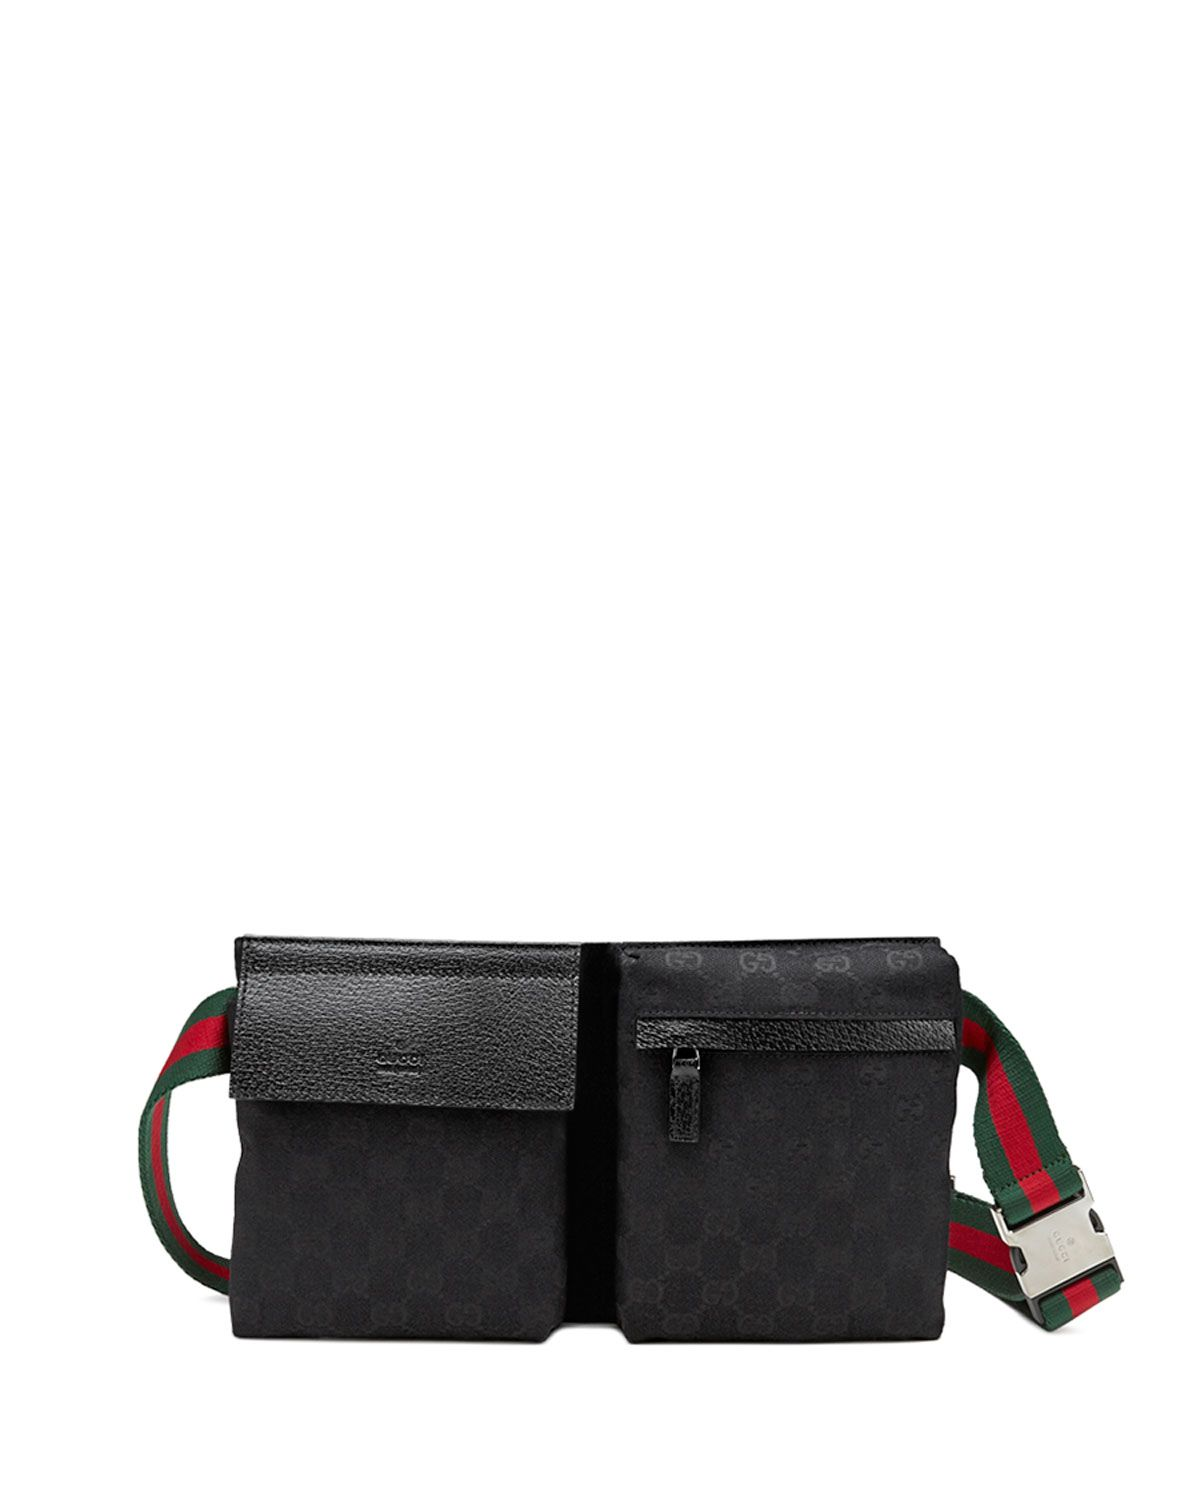 937a178157 Original GG Canvas Belt Bag, Black - Gucci | *Luggage & Bags > Fanny ...